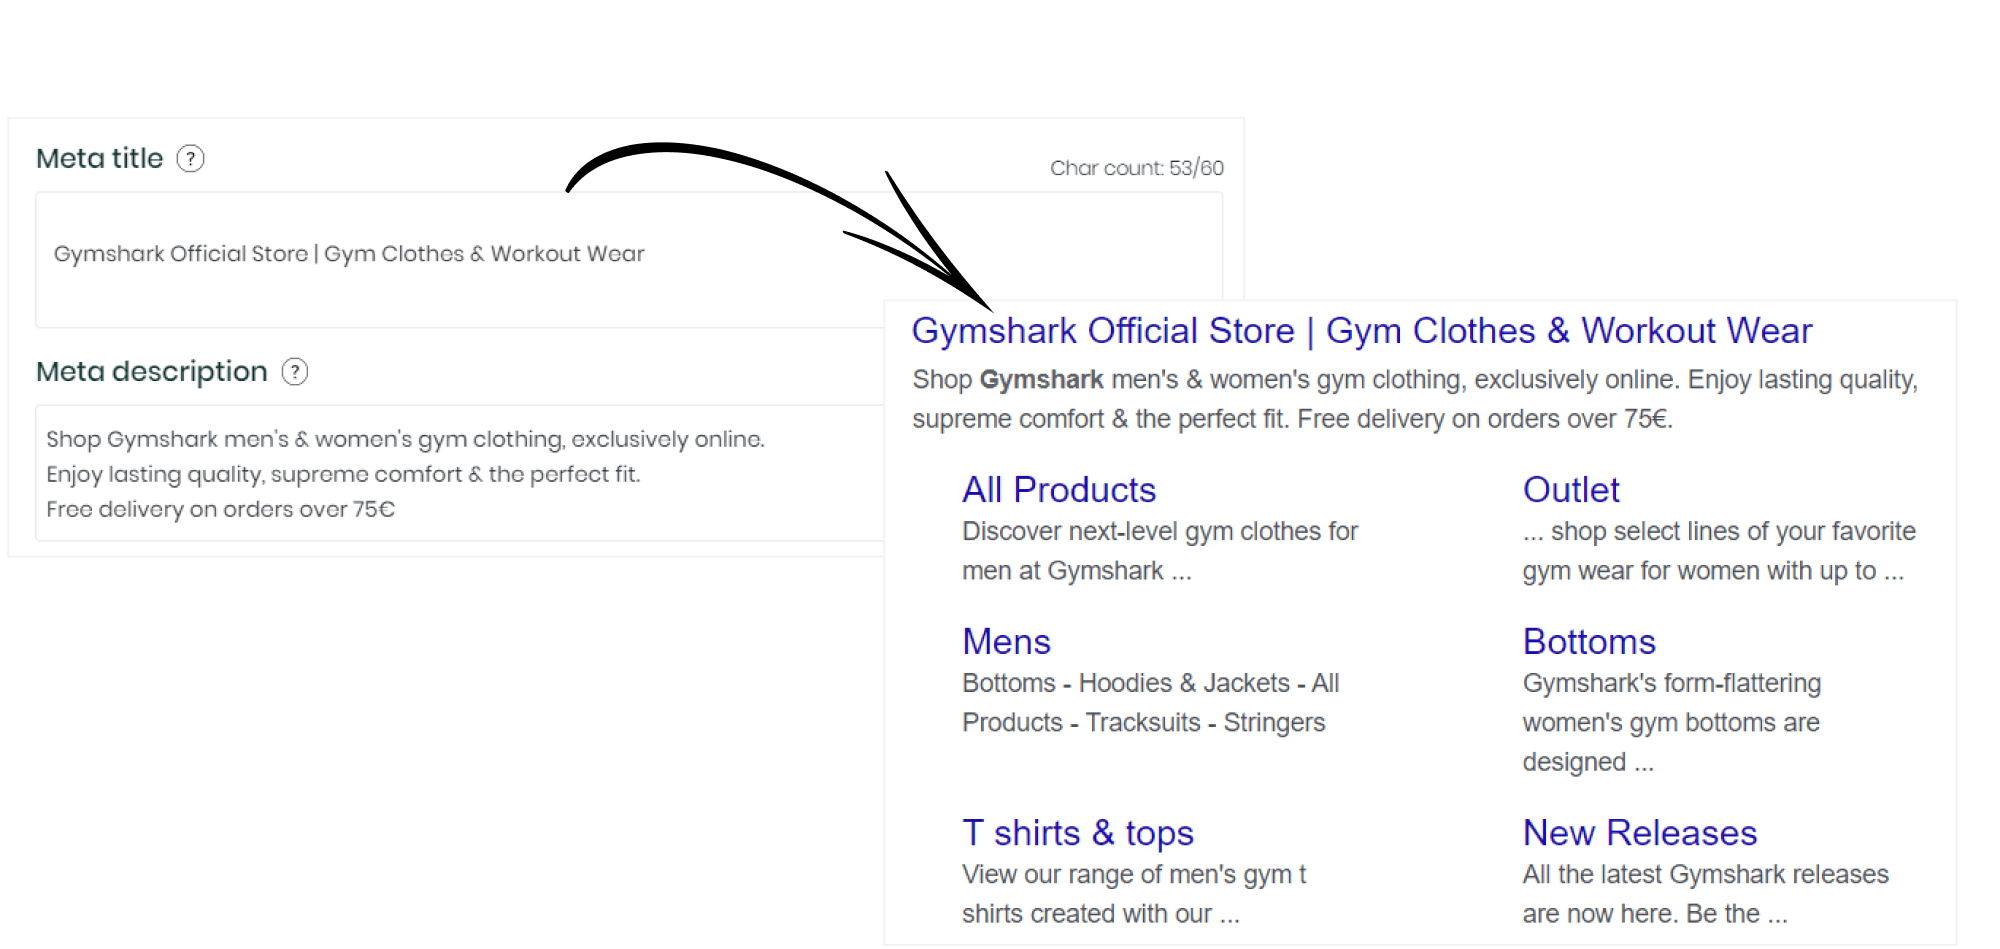 Create meta titles and meta descriptions for a perfect optimized Shopify store